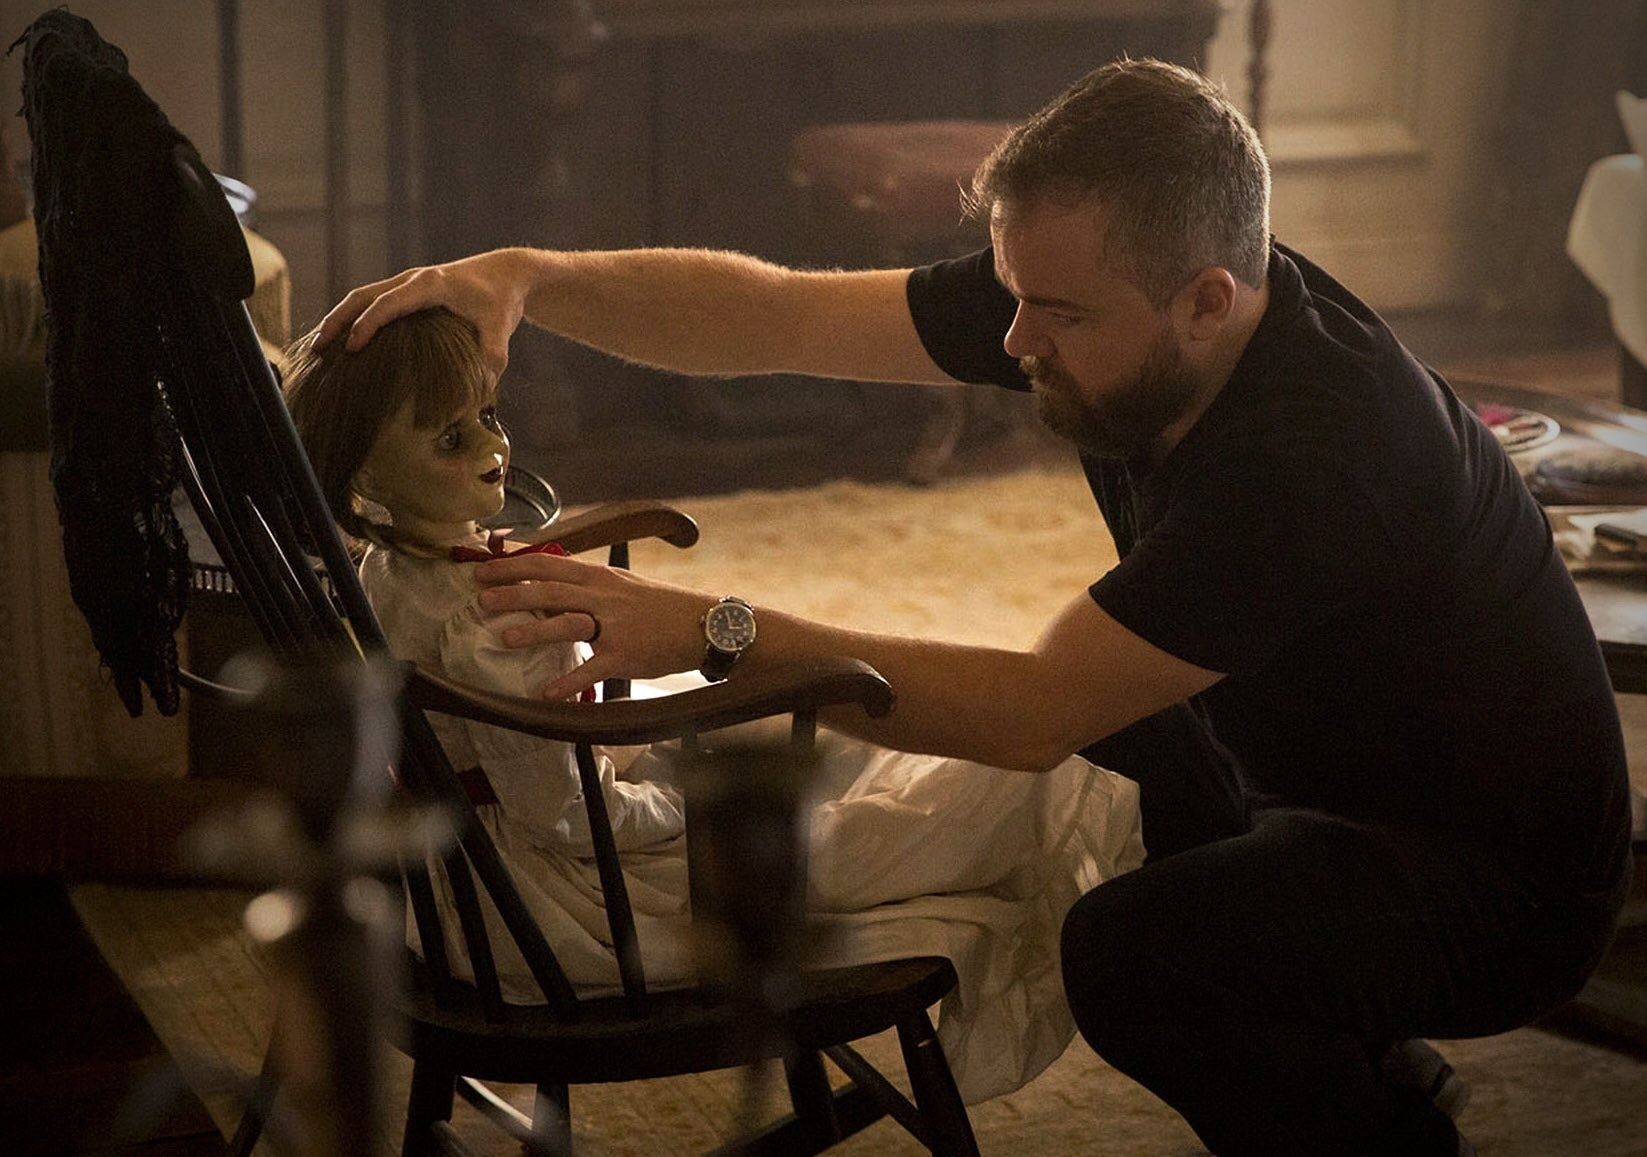 annabelle 2 - Annabelle: Creation - Exclusive Interview with Director David F. Sandberg